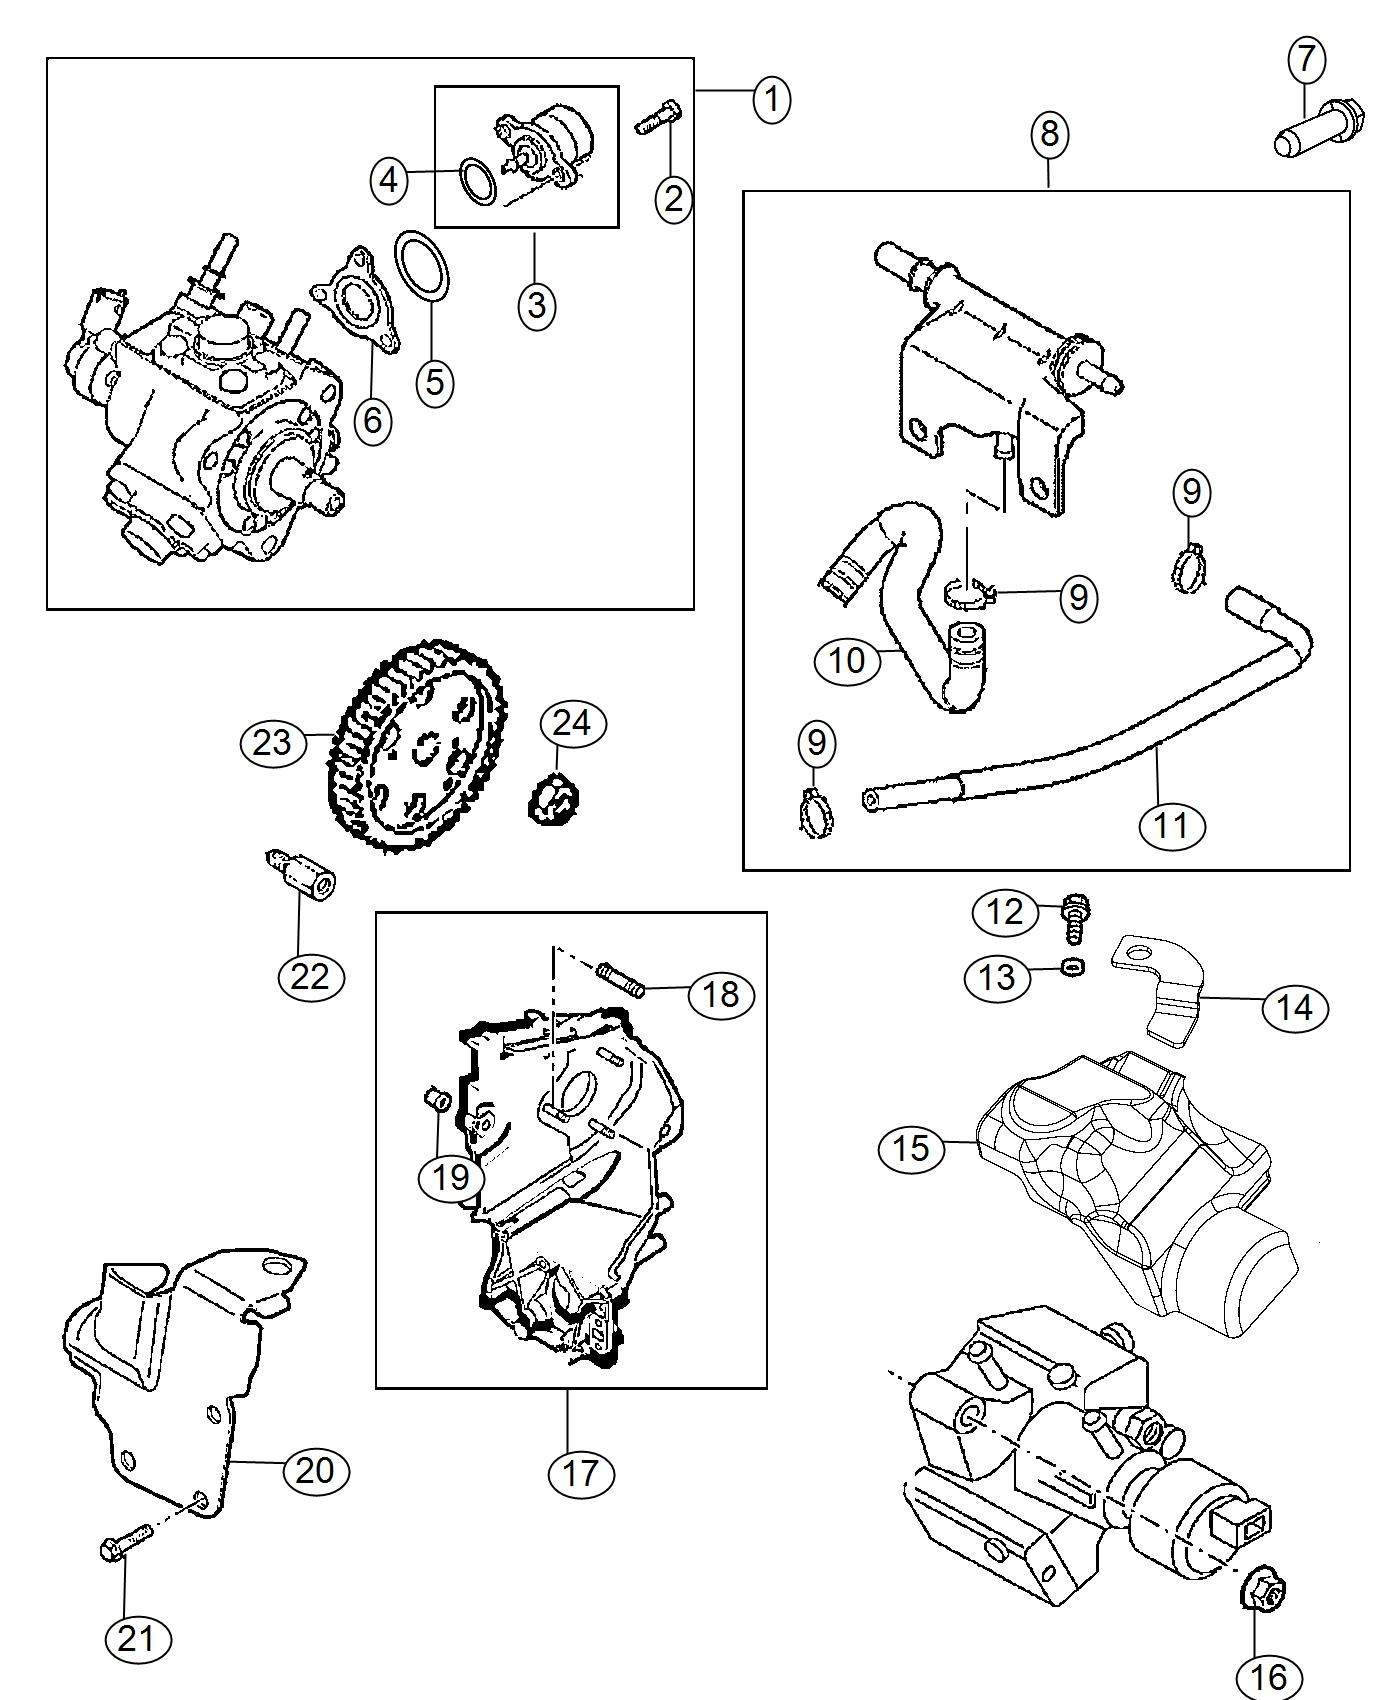 Jeep Cherokee Pump Fuel Injection Engine Emissions